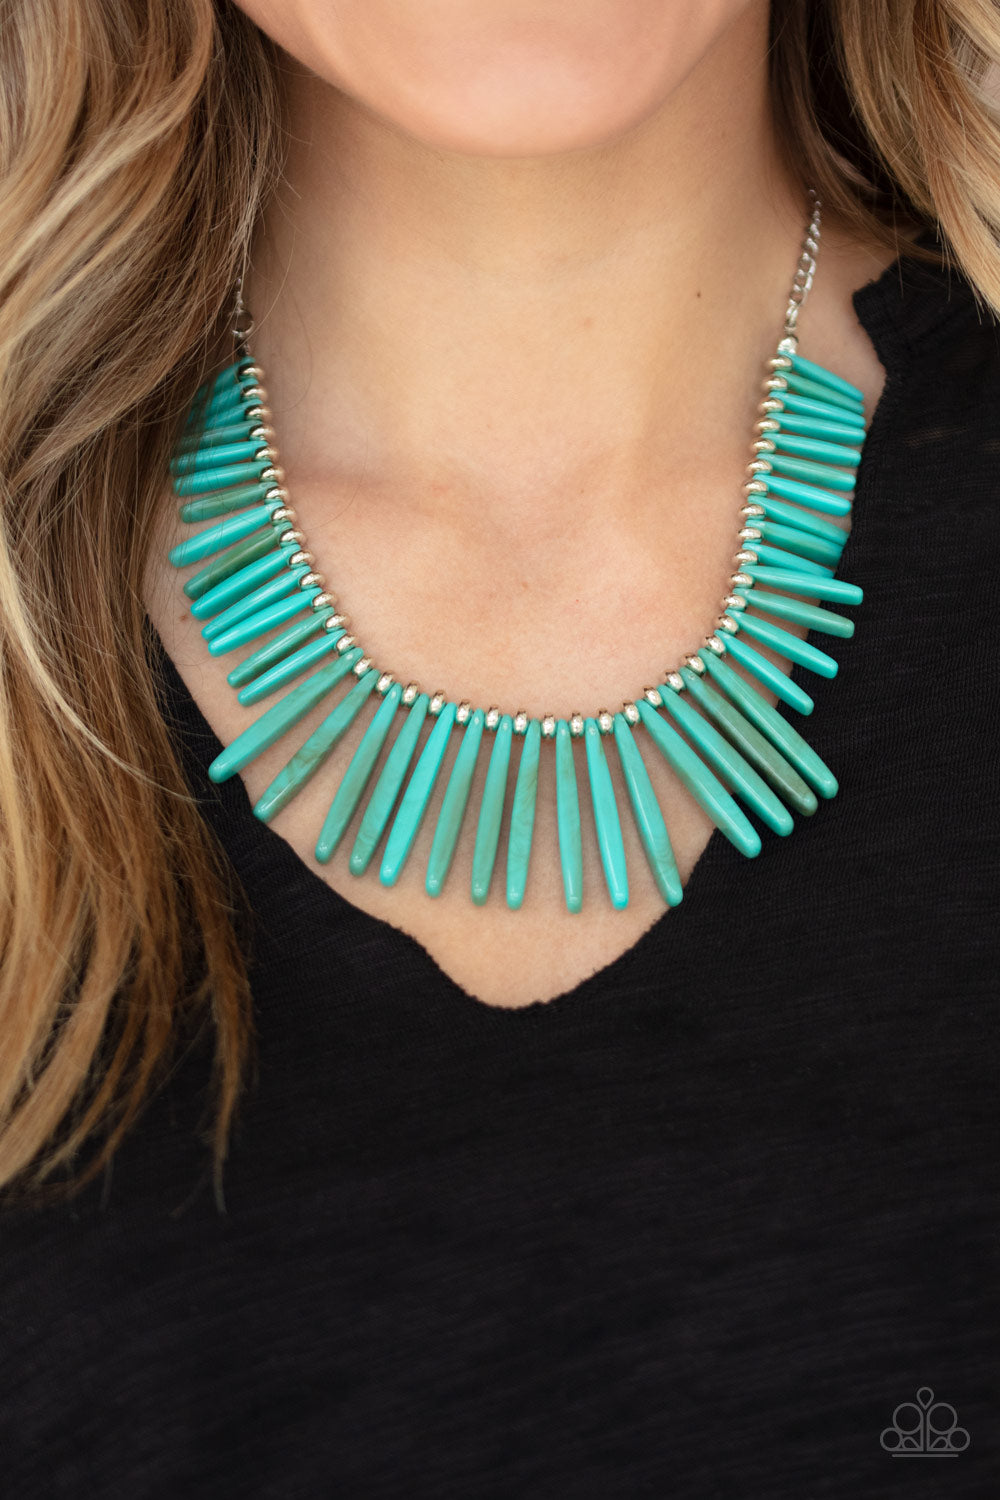 Out of My Element - Blue Paparazzi Necklace: July 2020 Life of the Party